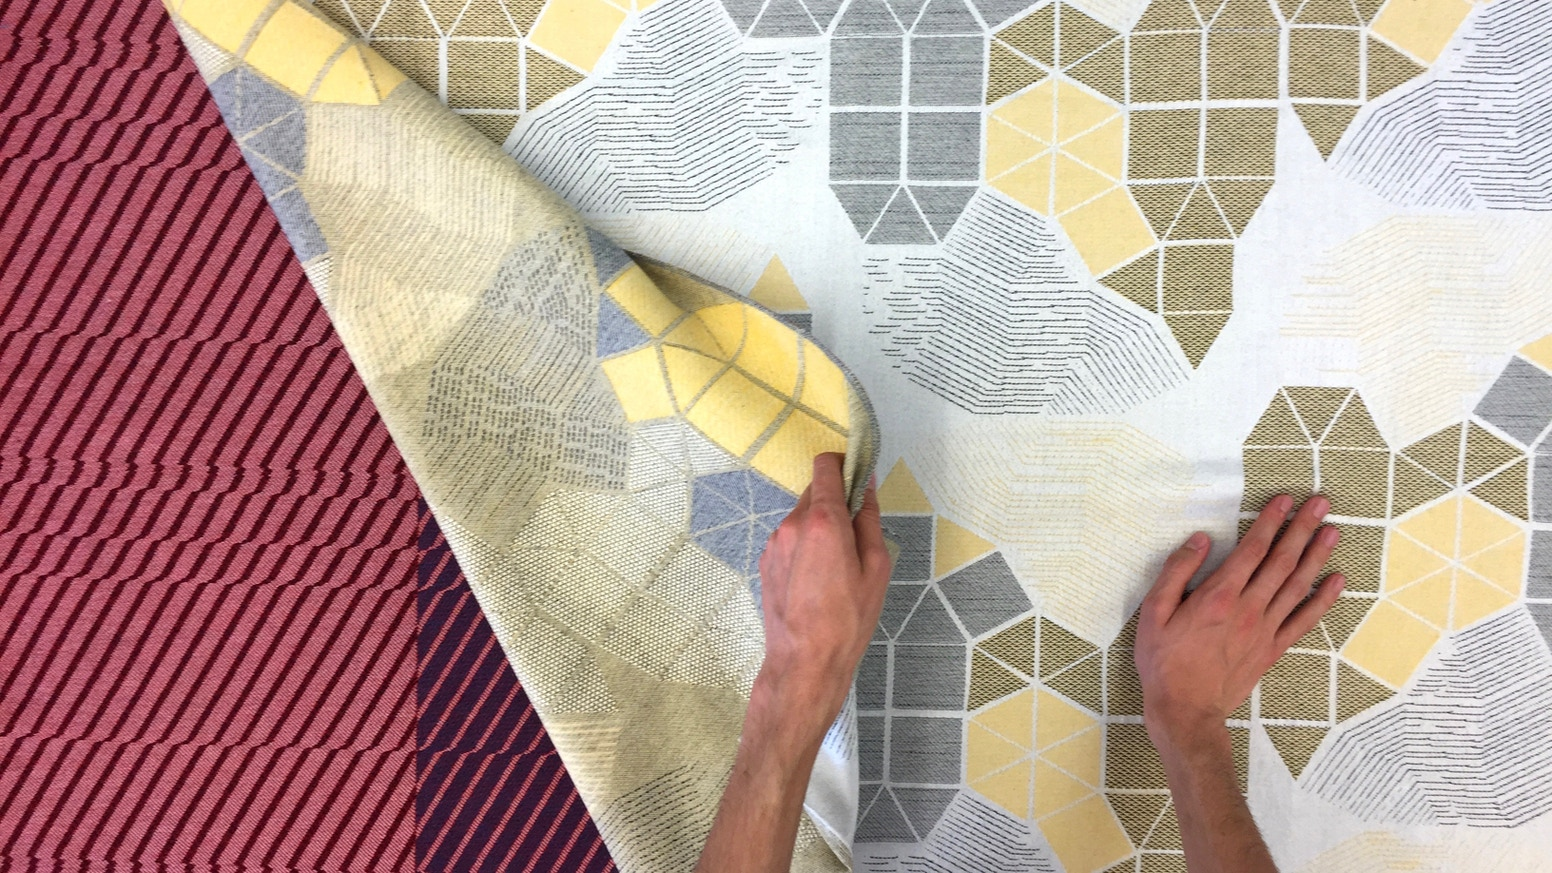 WOVNS allows everyone to turn their digital designs into custom Jacquard-woven fabric, in quantities as small as a single yard.